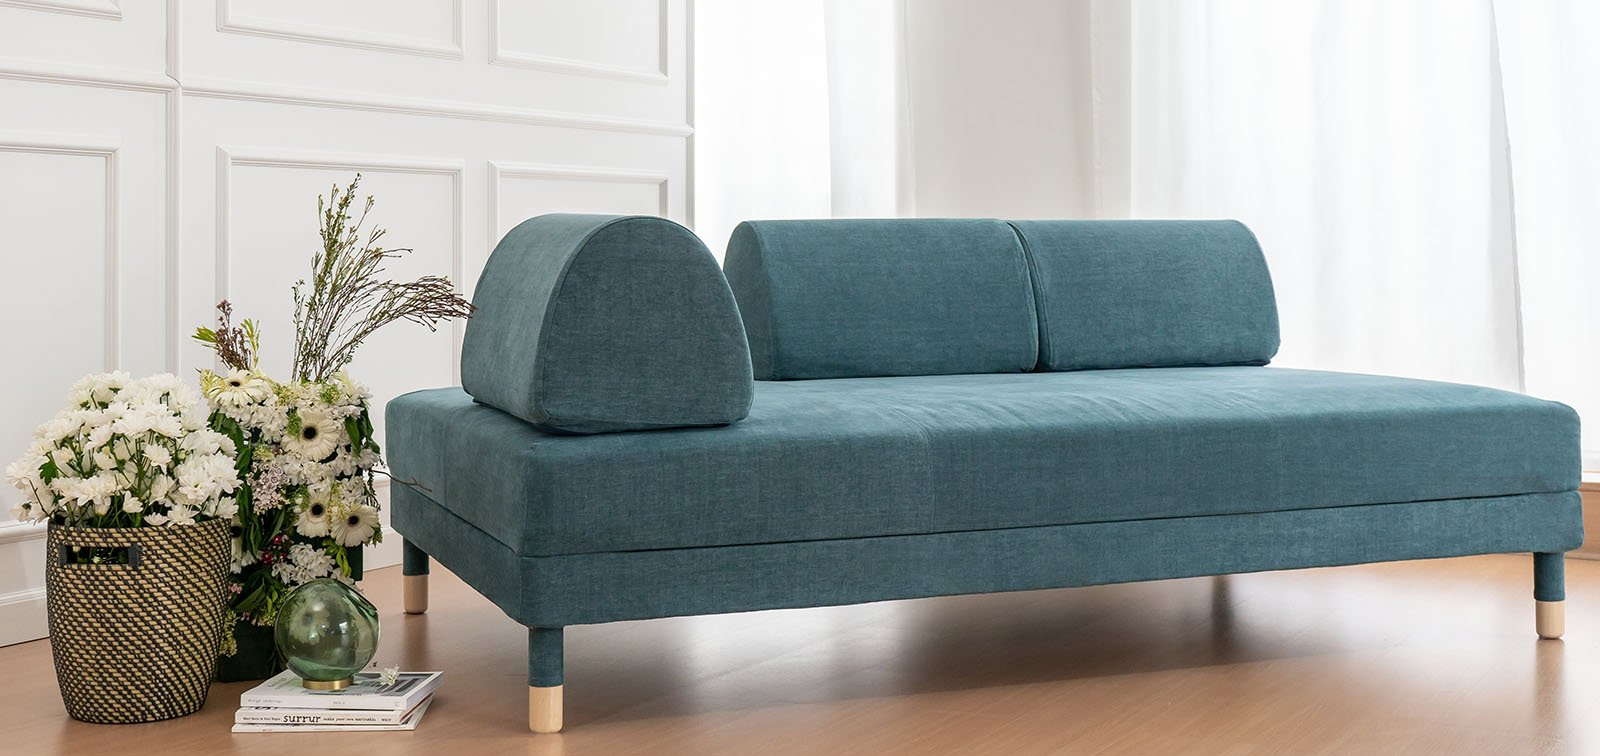 Flottebo Sofa Bed Covers in Madison Teal